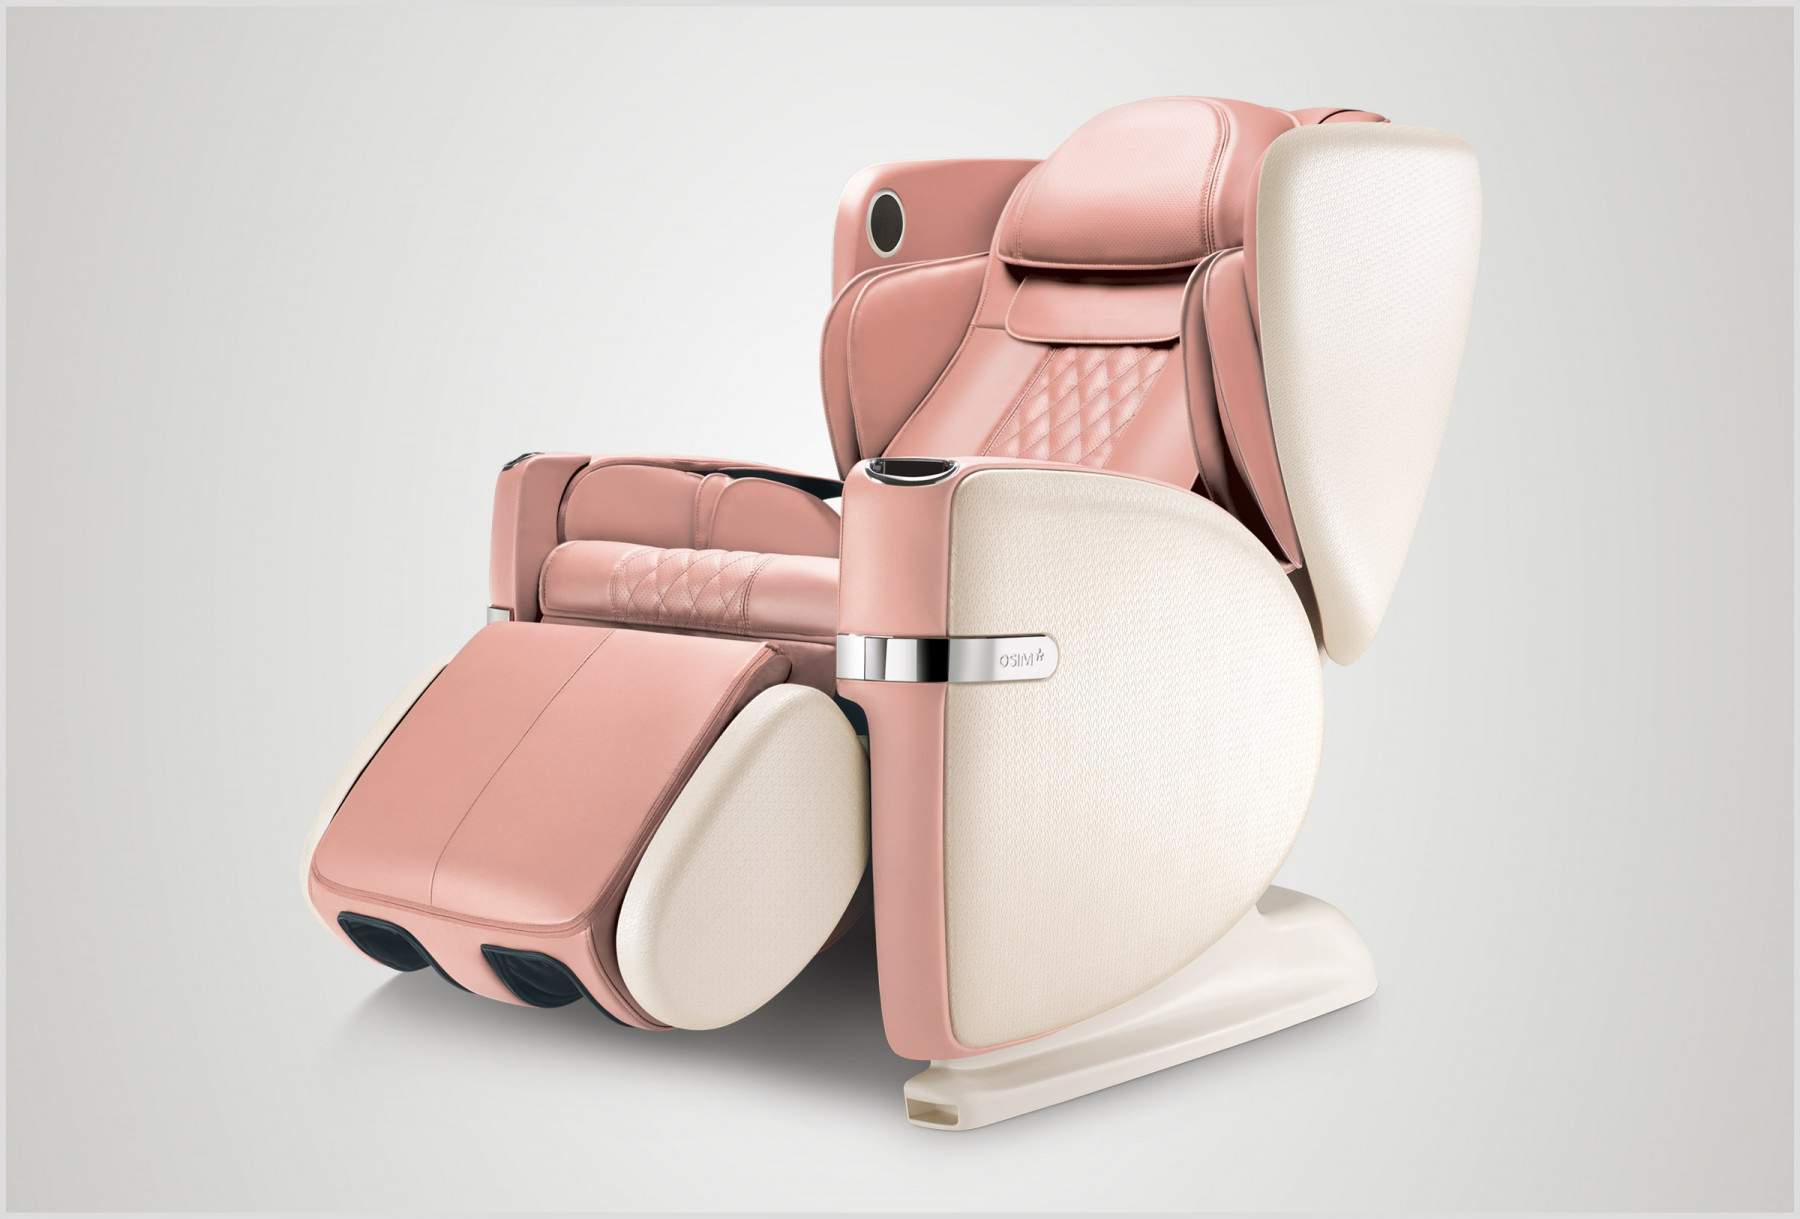 massage chair store price for christmas covers ulove osim singapore